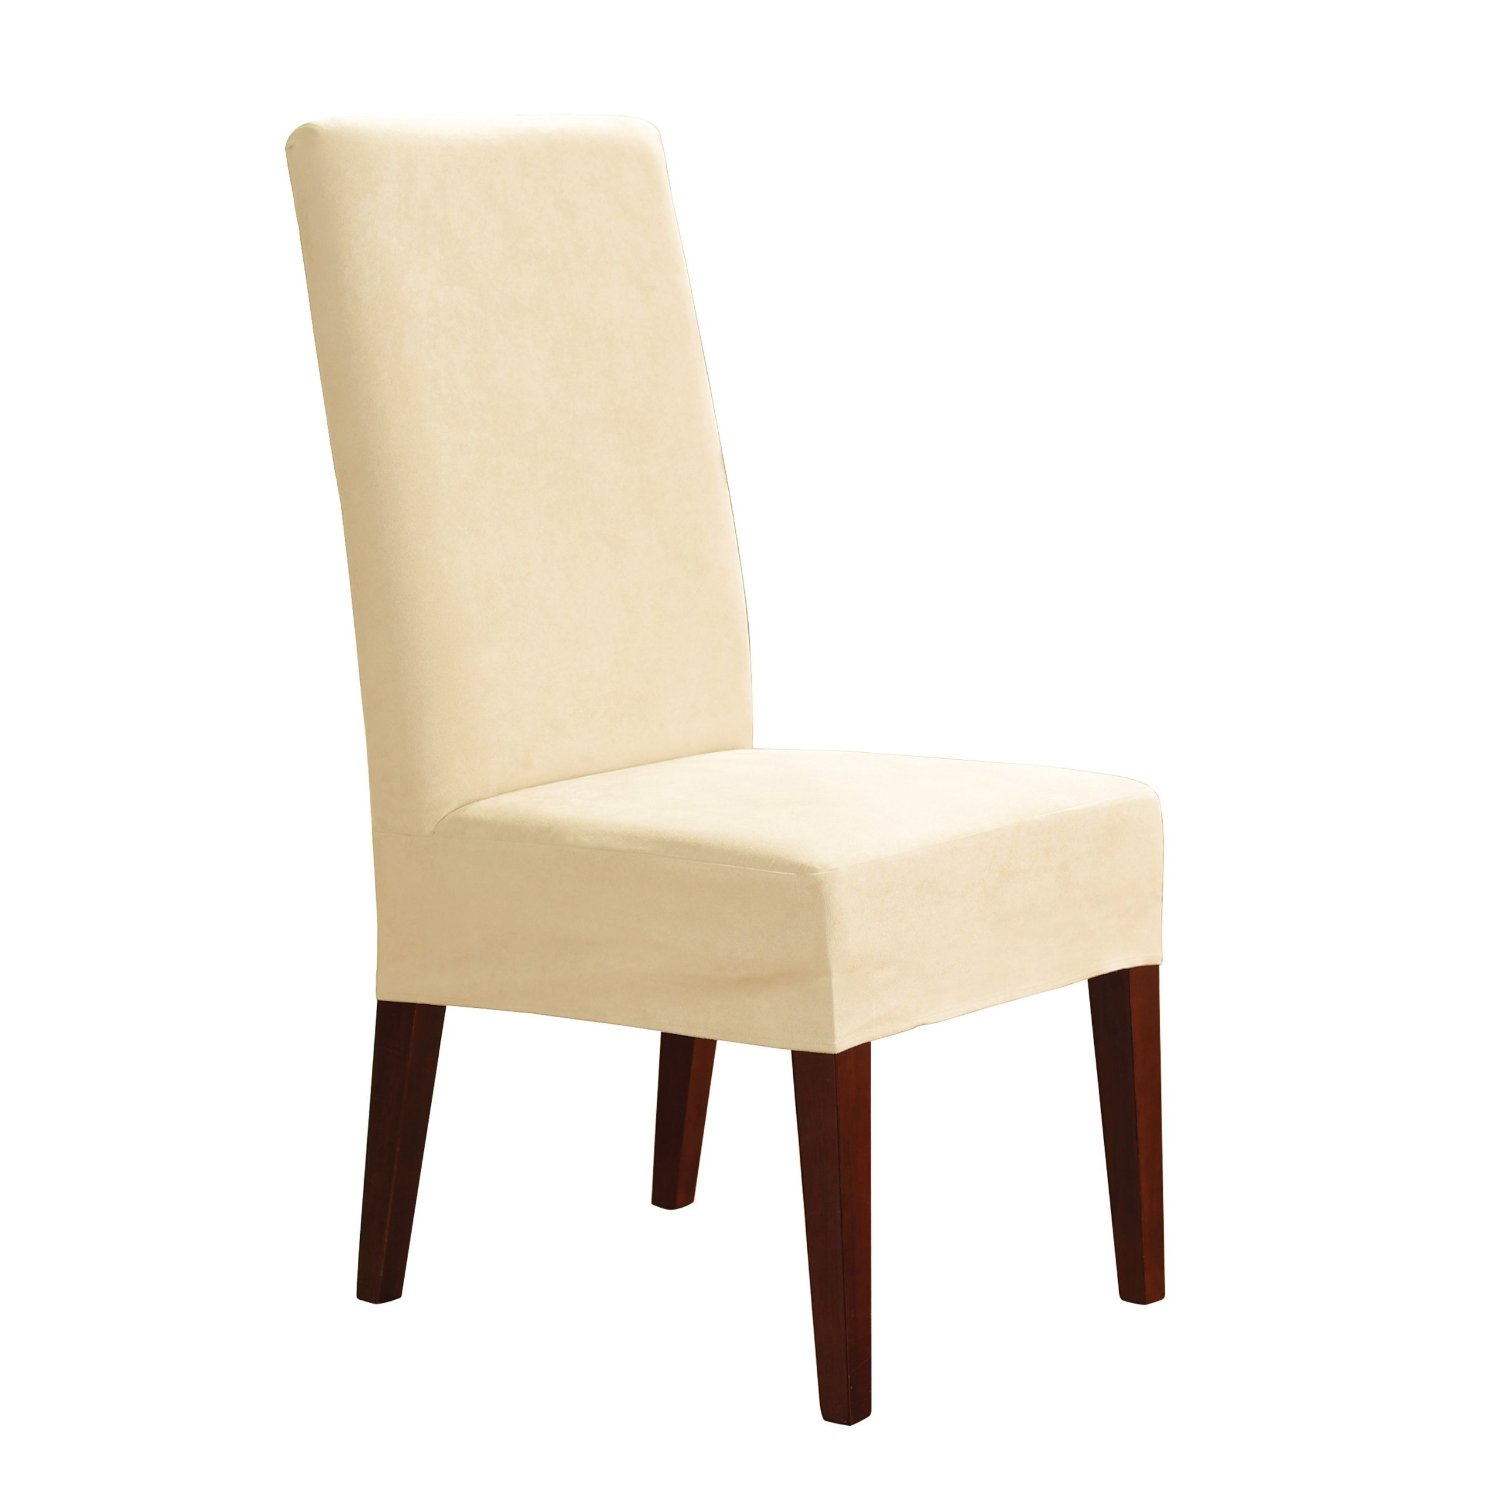 kitchen chair slipcovers factory covers change the mood with my